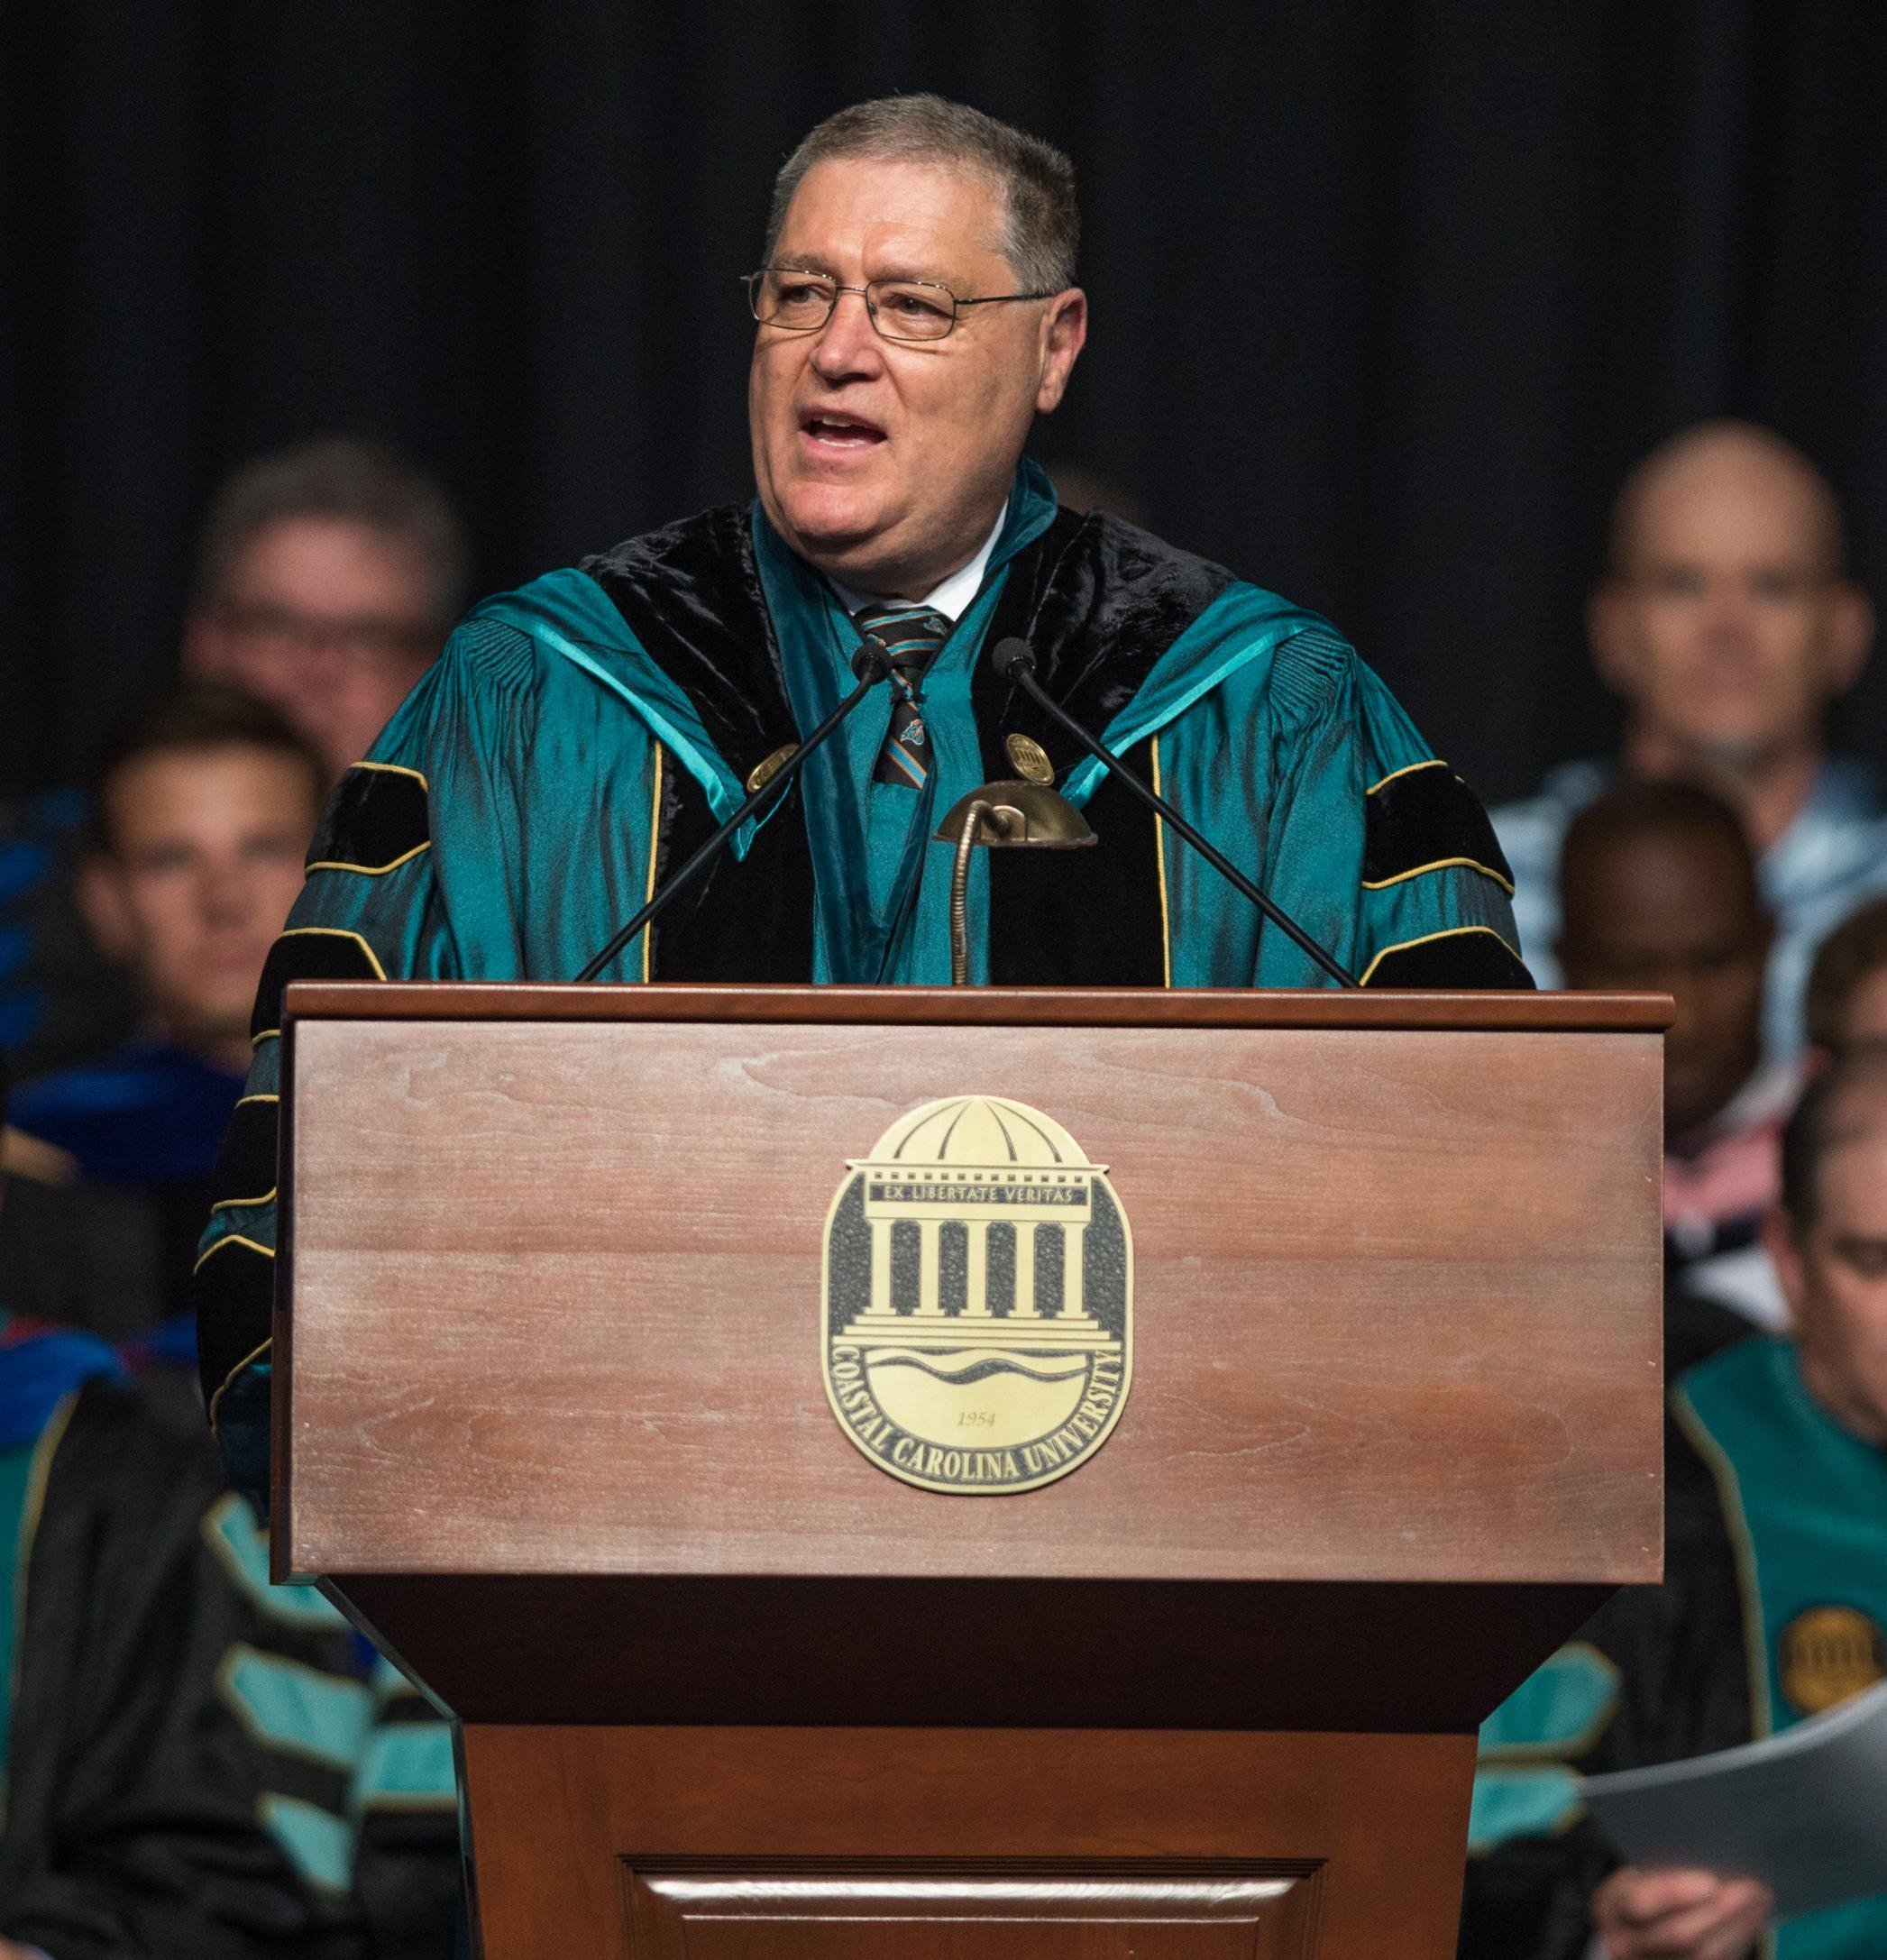 Photo of President David DeCenzo at the podium, in front of a crowd, speaking at a commencement